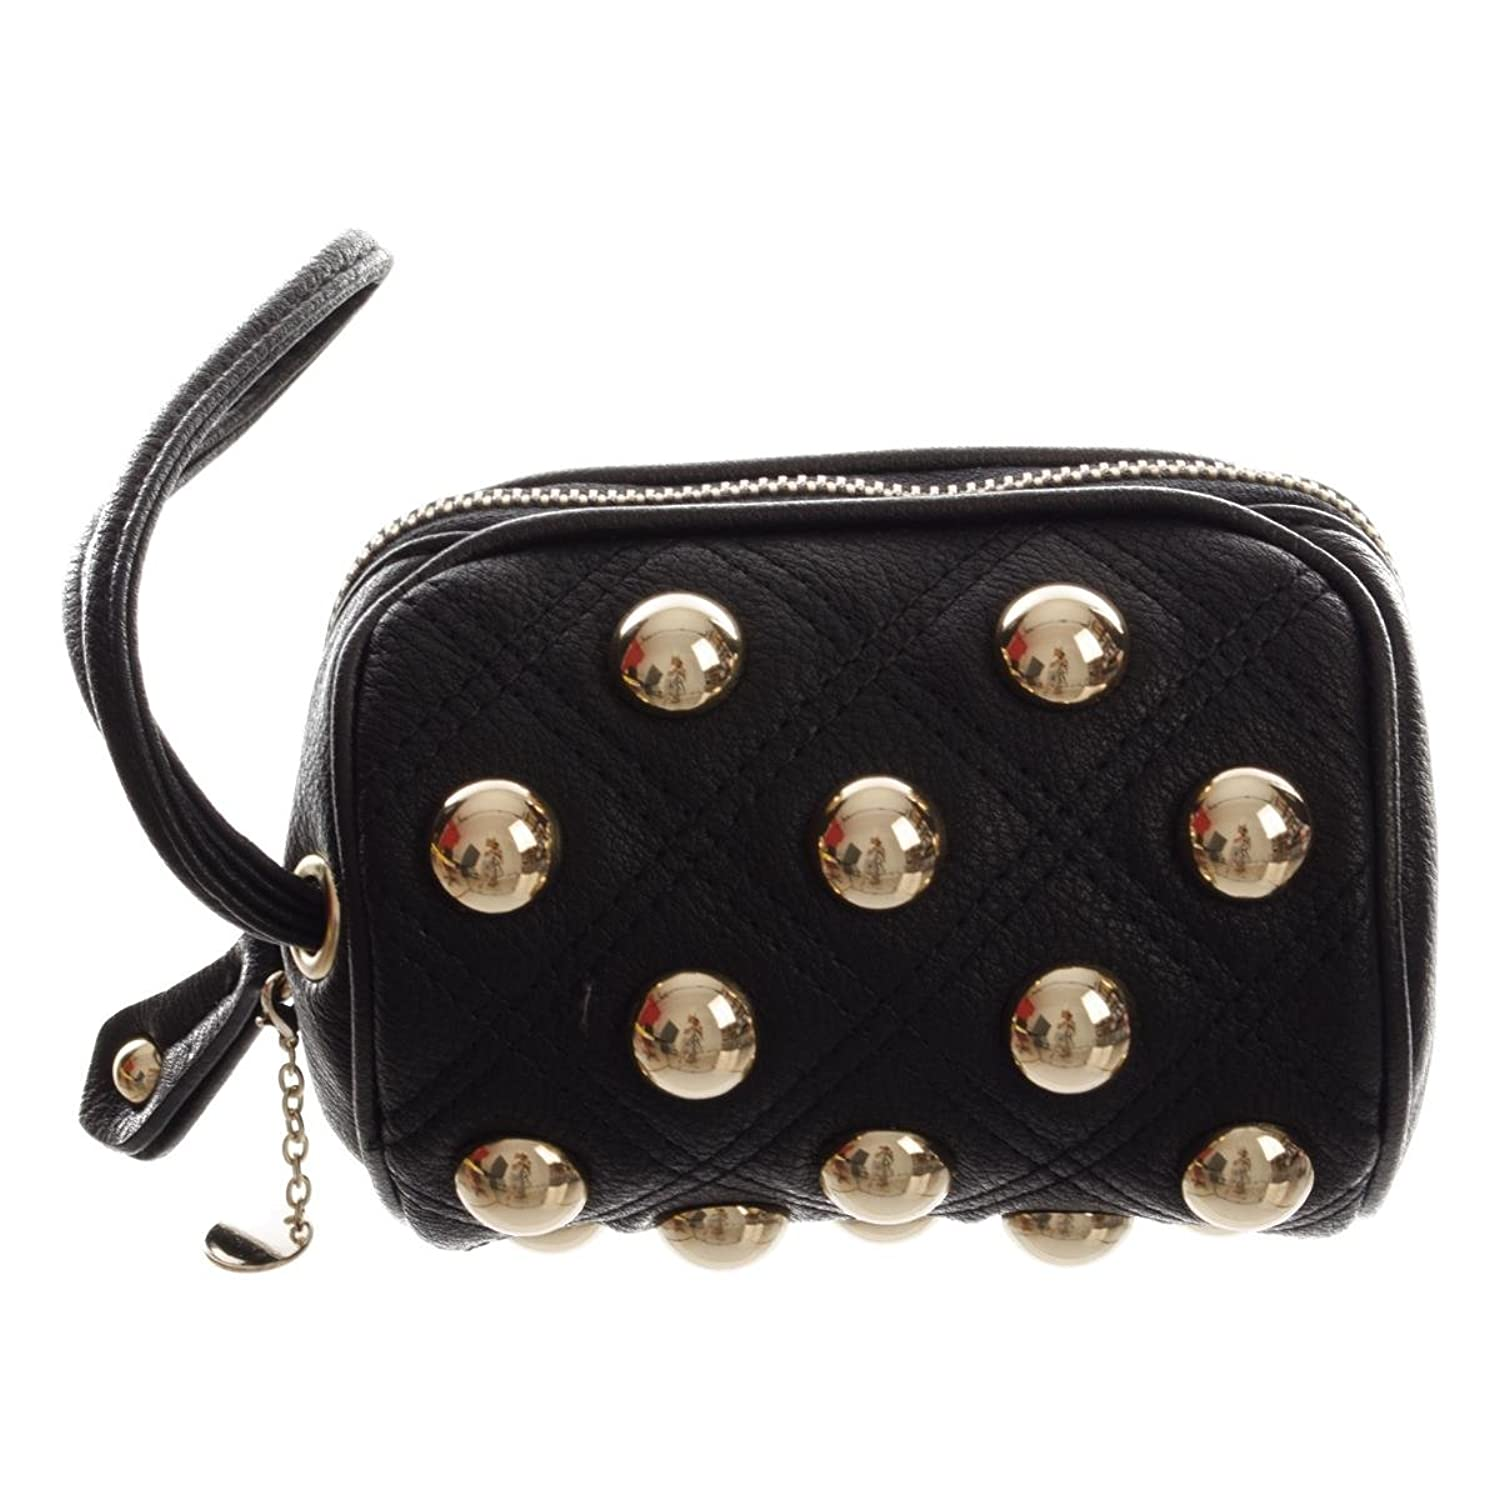 Twin-Set Beuty Case Rivet damen, accessori: borsa a mano, schwarz